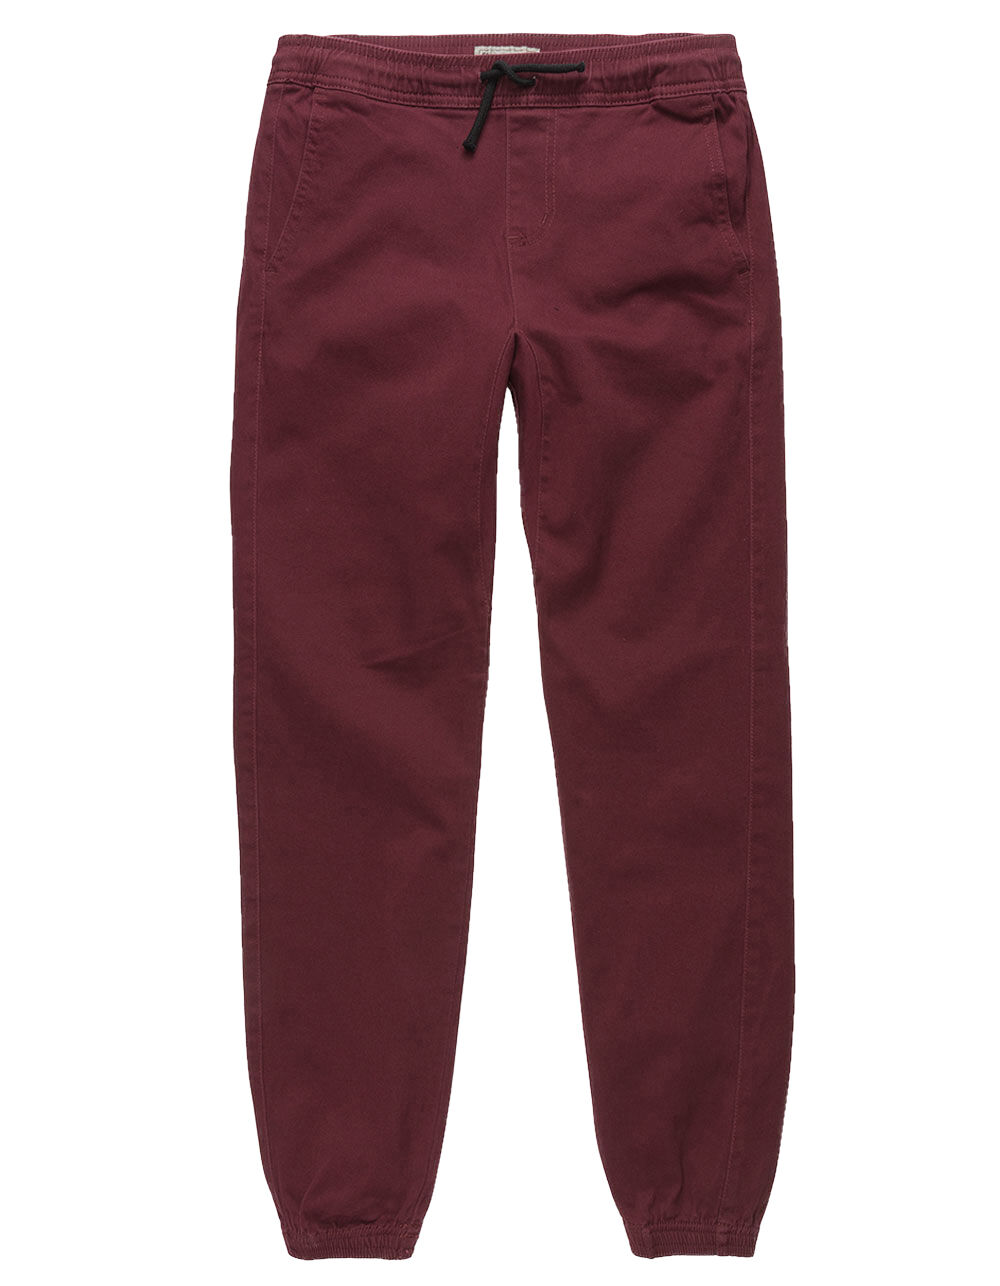 Image of CHARLES AND A HALF CABERNET BOYS TWILL JOGGER PANTS